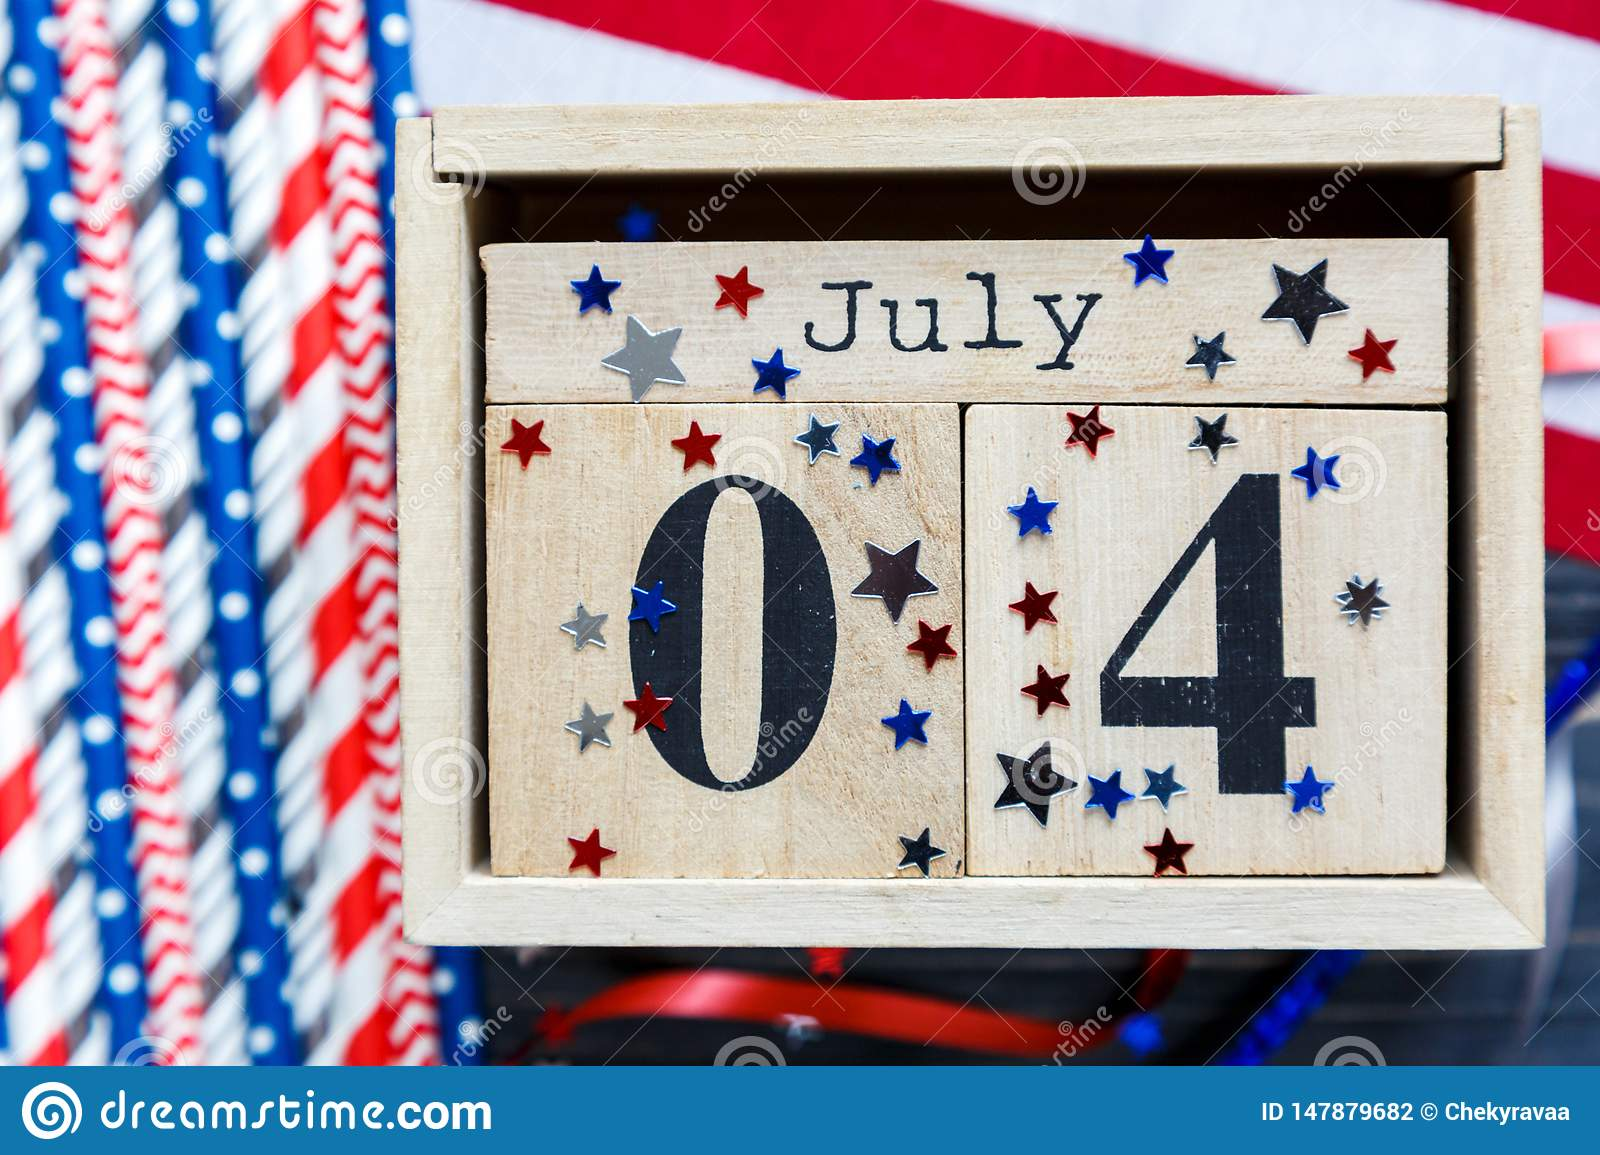 Wooden calendar 4th of July day of American independence, decorations, flag, candles, straws. USA holiday decorations